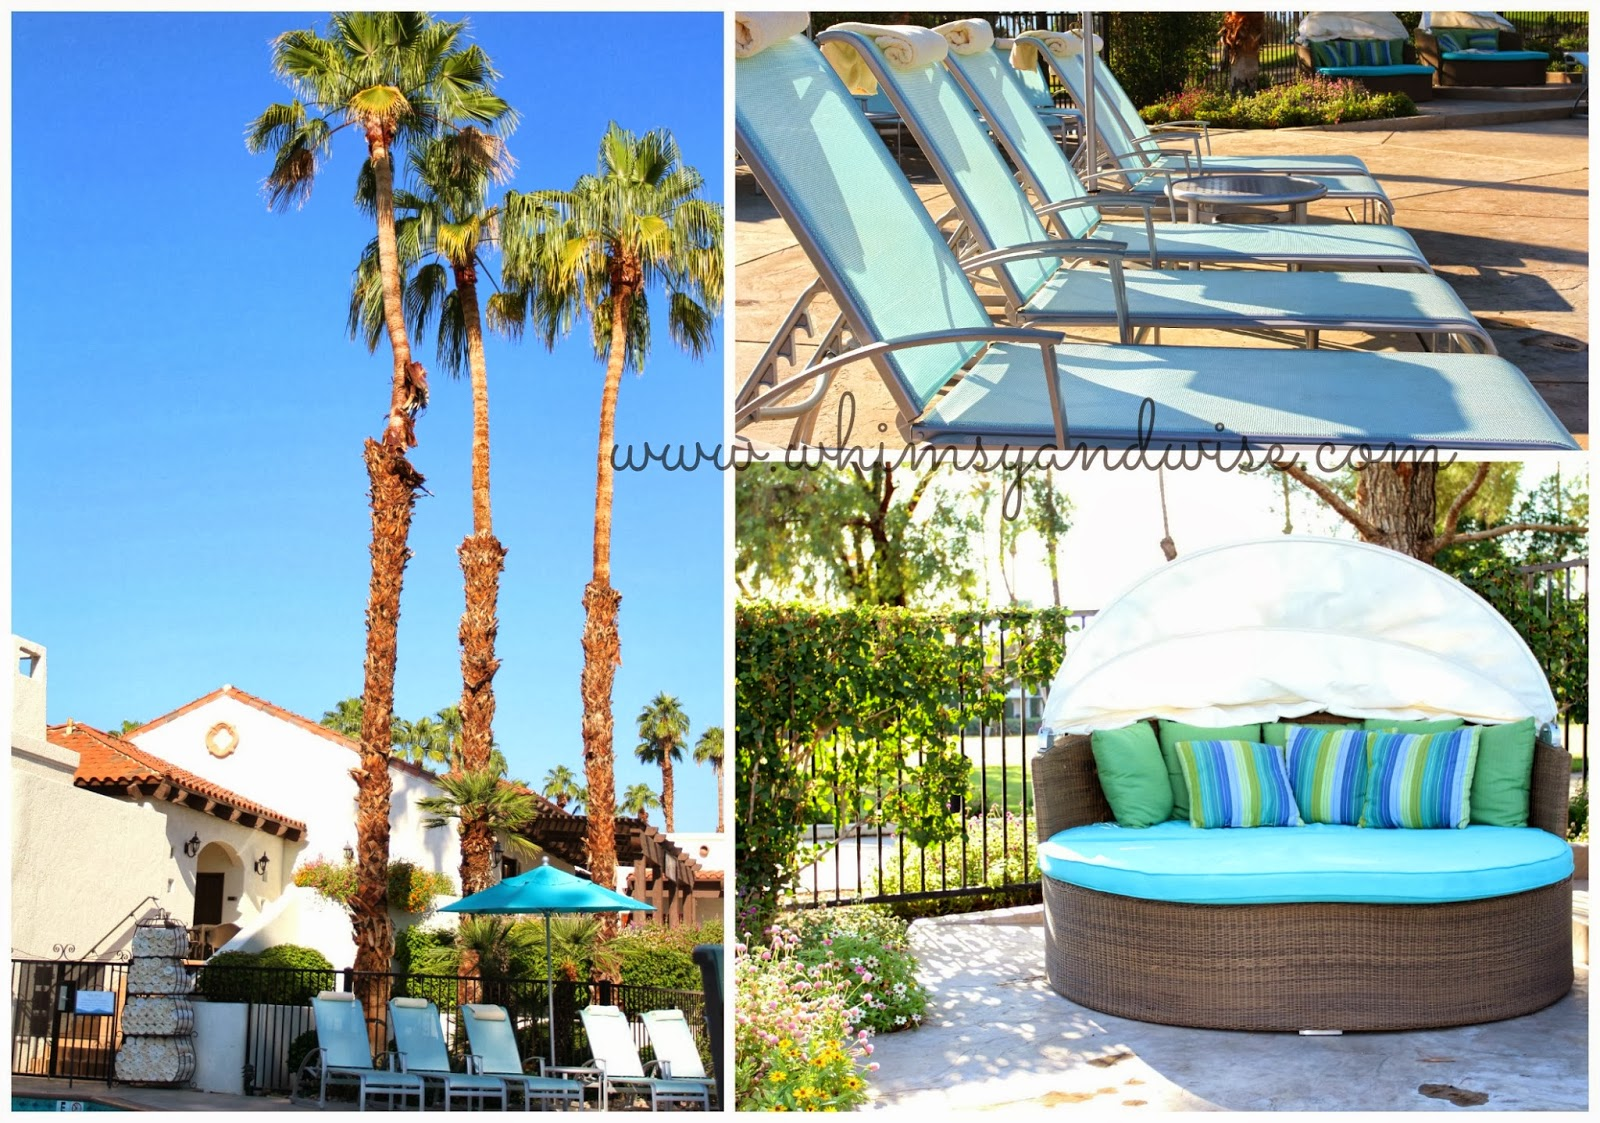 Whimsy wise events the rancho las palmas resort more for Travel to palm springs